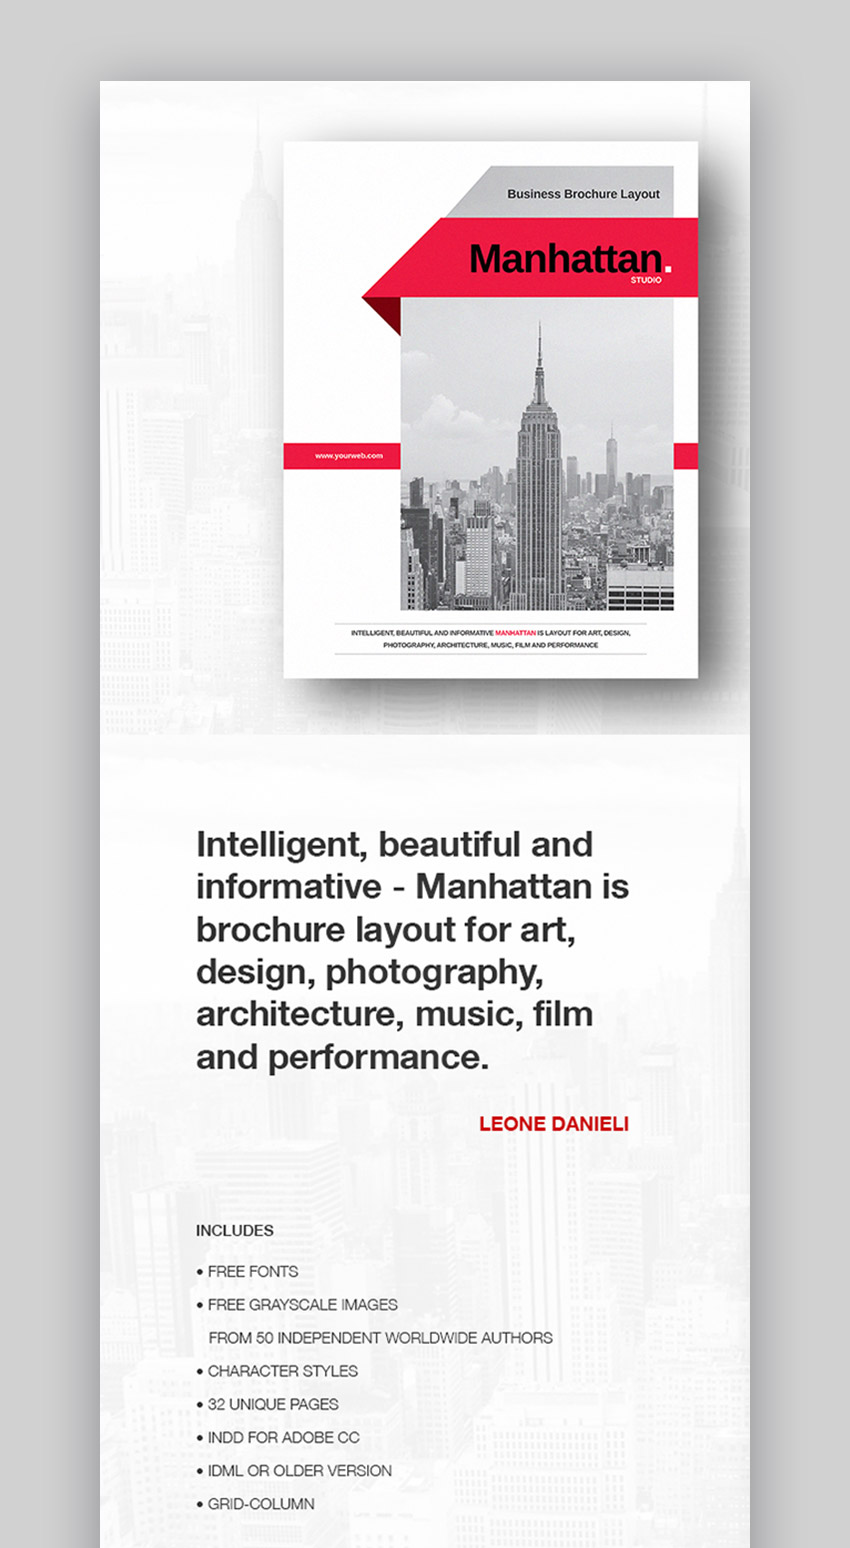 Manhattan Business Brochure